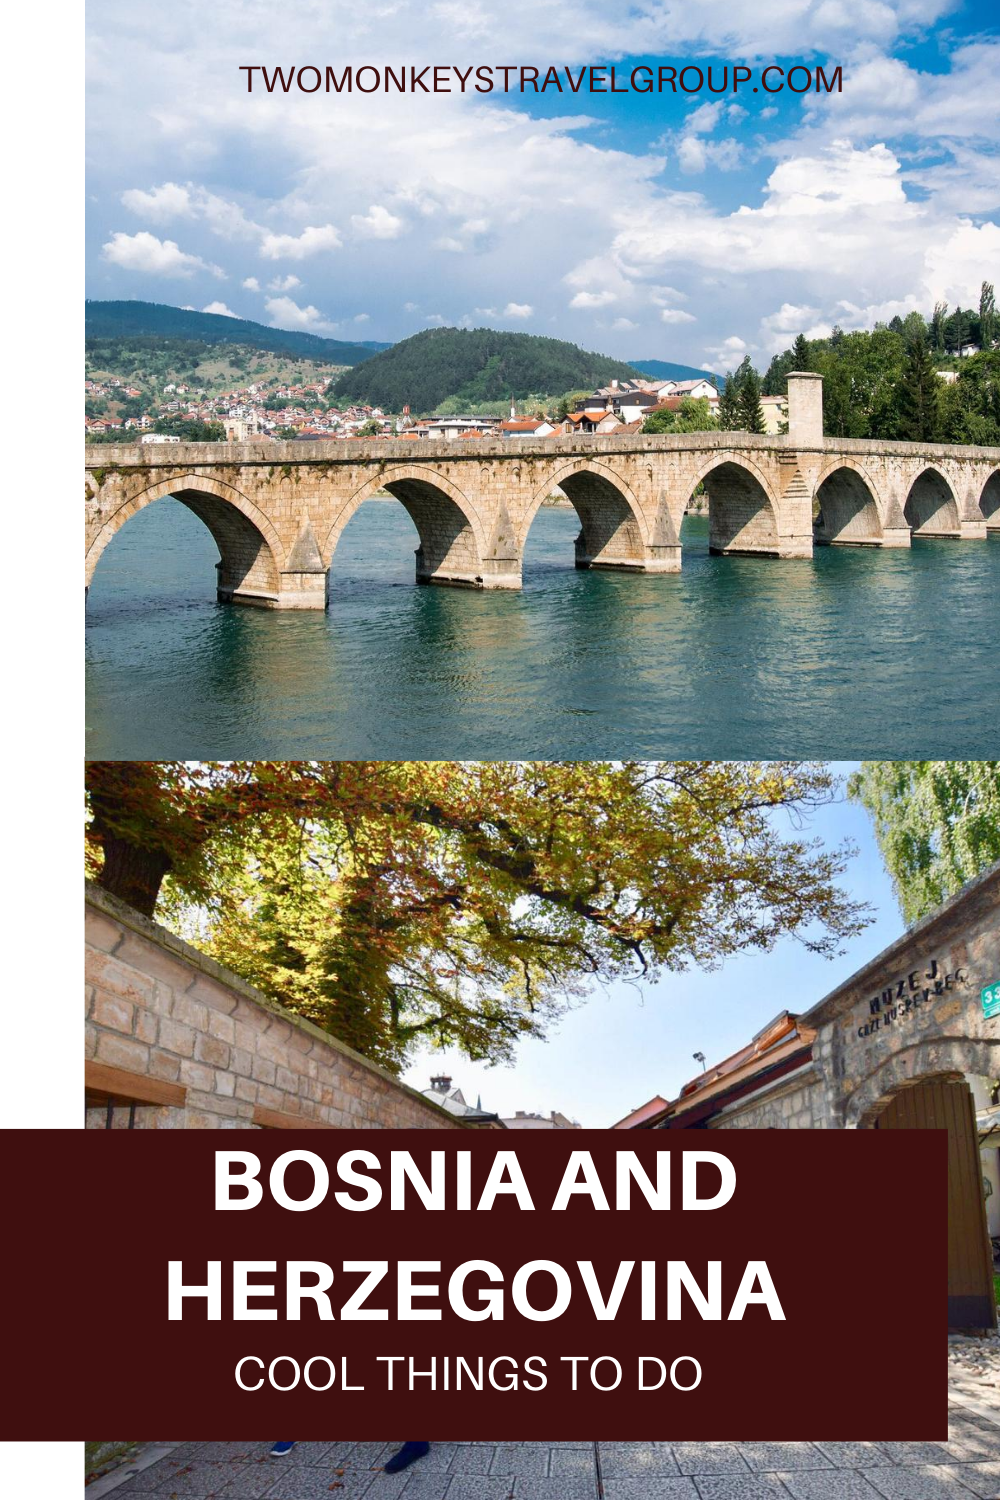 10 Cool Things To Do in Bosnia and Herzegovina